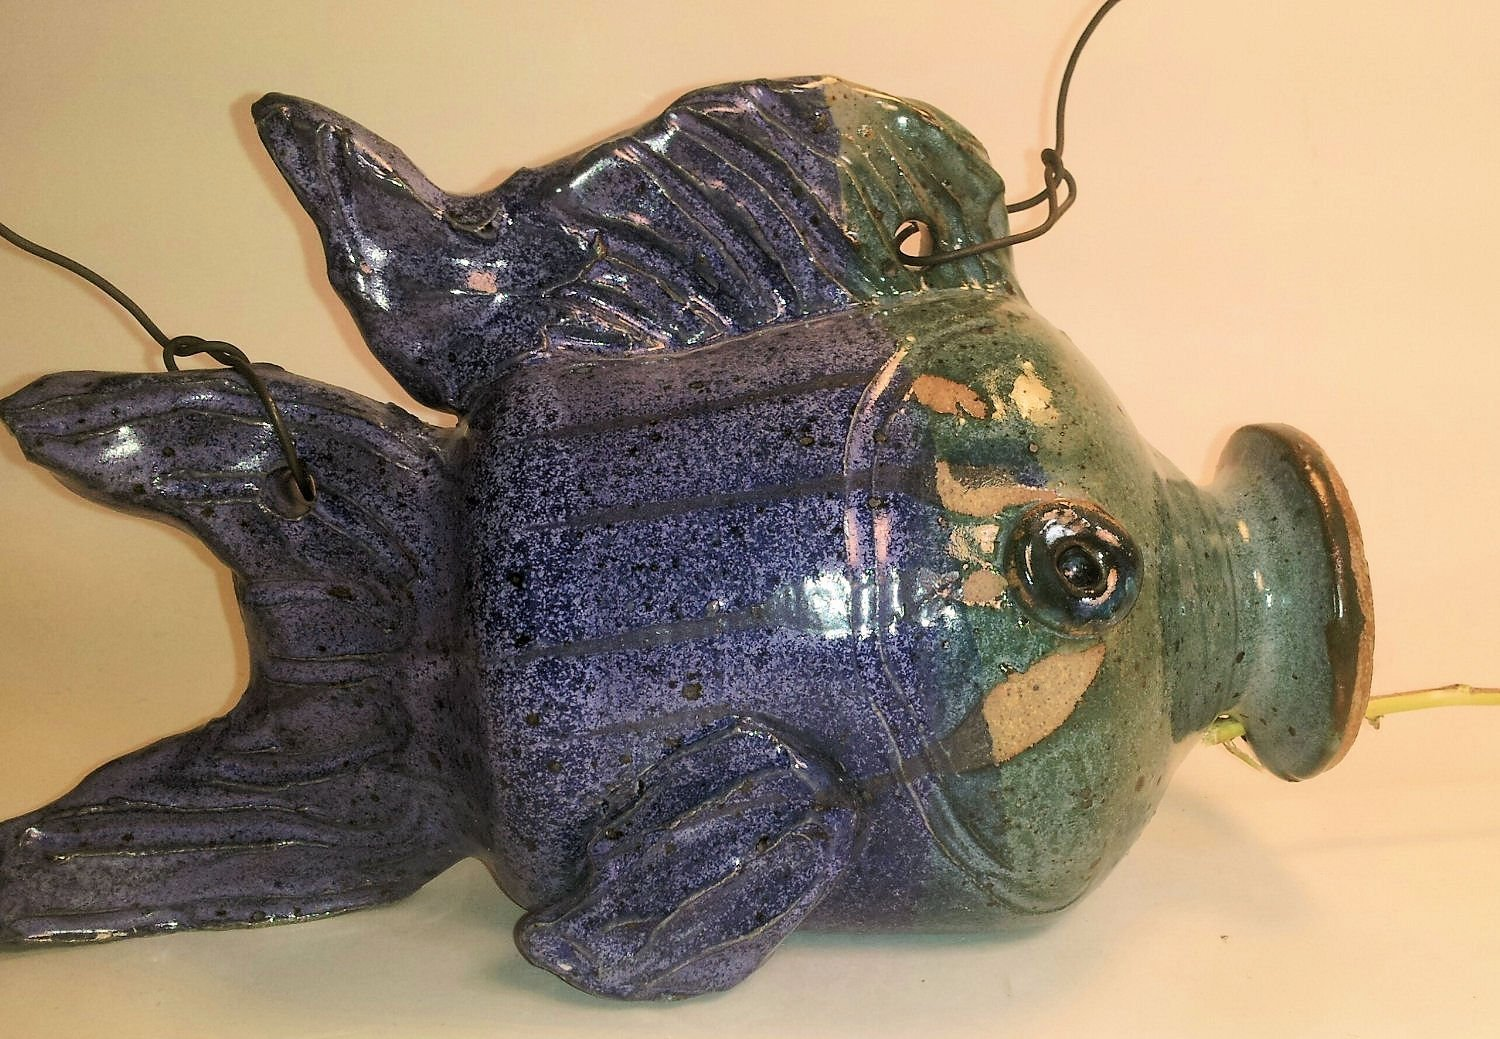 Aunt Chris' Pottery - Hand made Clay Bird House - Primitive Style Shaped Like a Fish - With Rustic Bird Perch - Hangs With Black Wire or Chain - Primitive Blue and Primitive Green Glazed